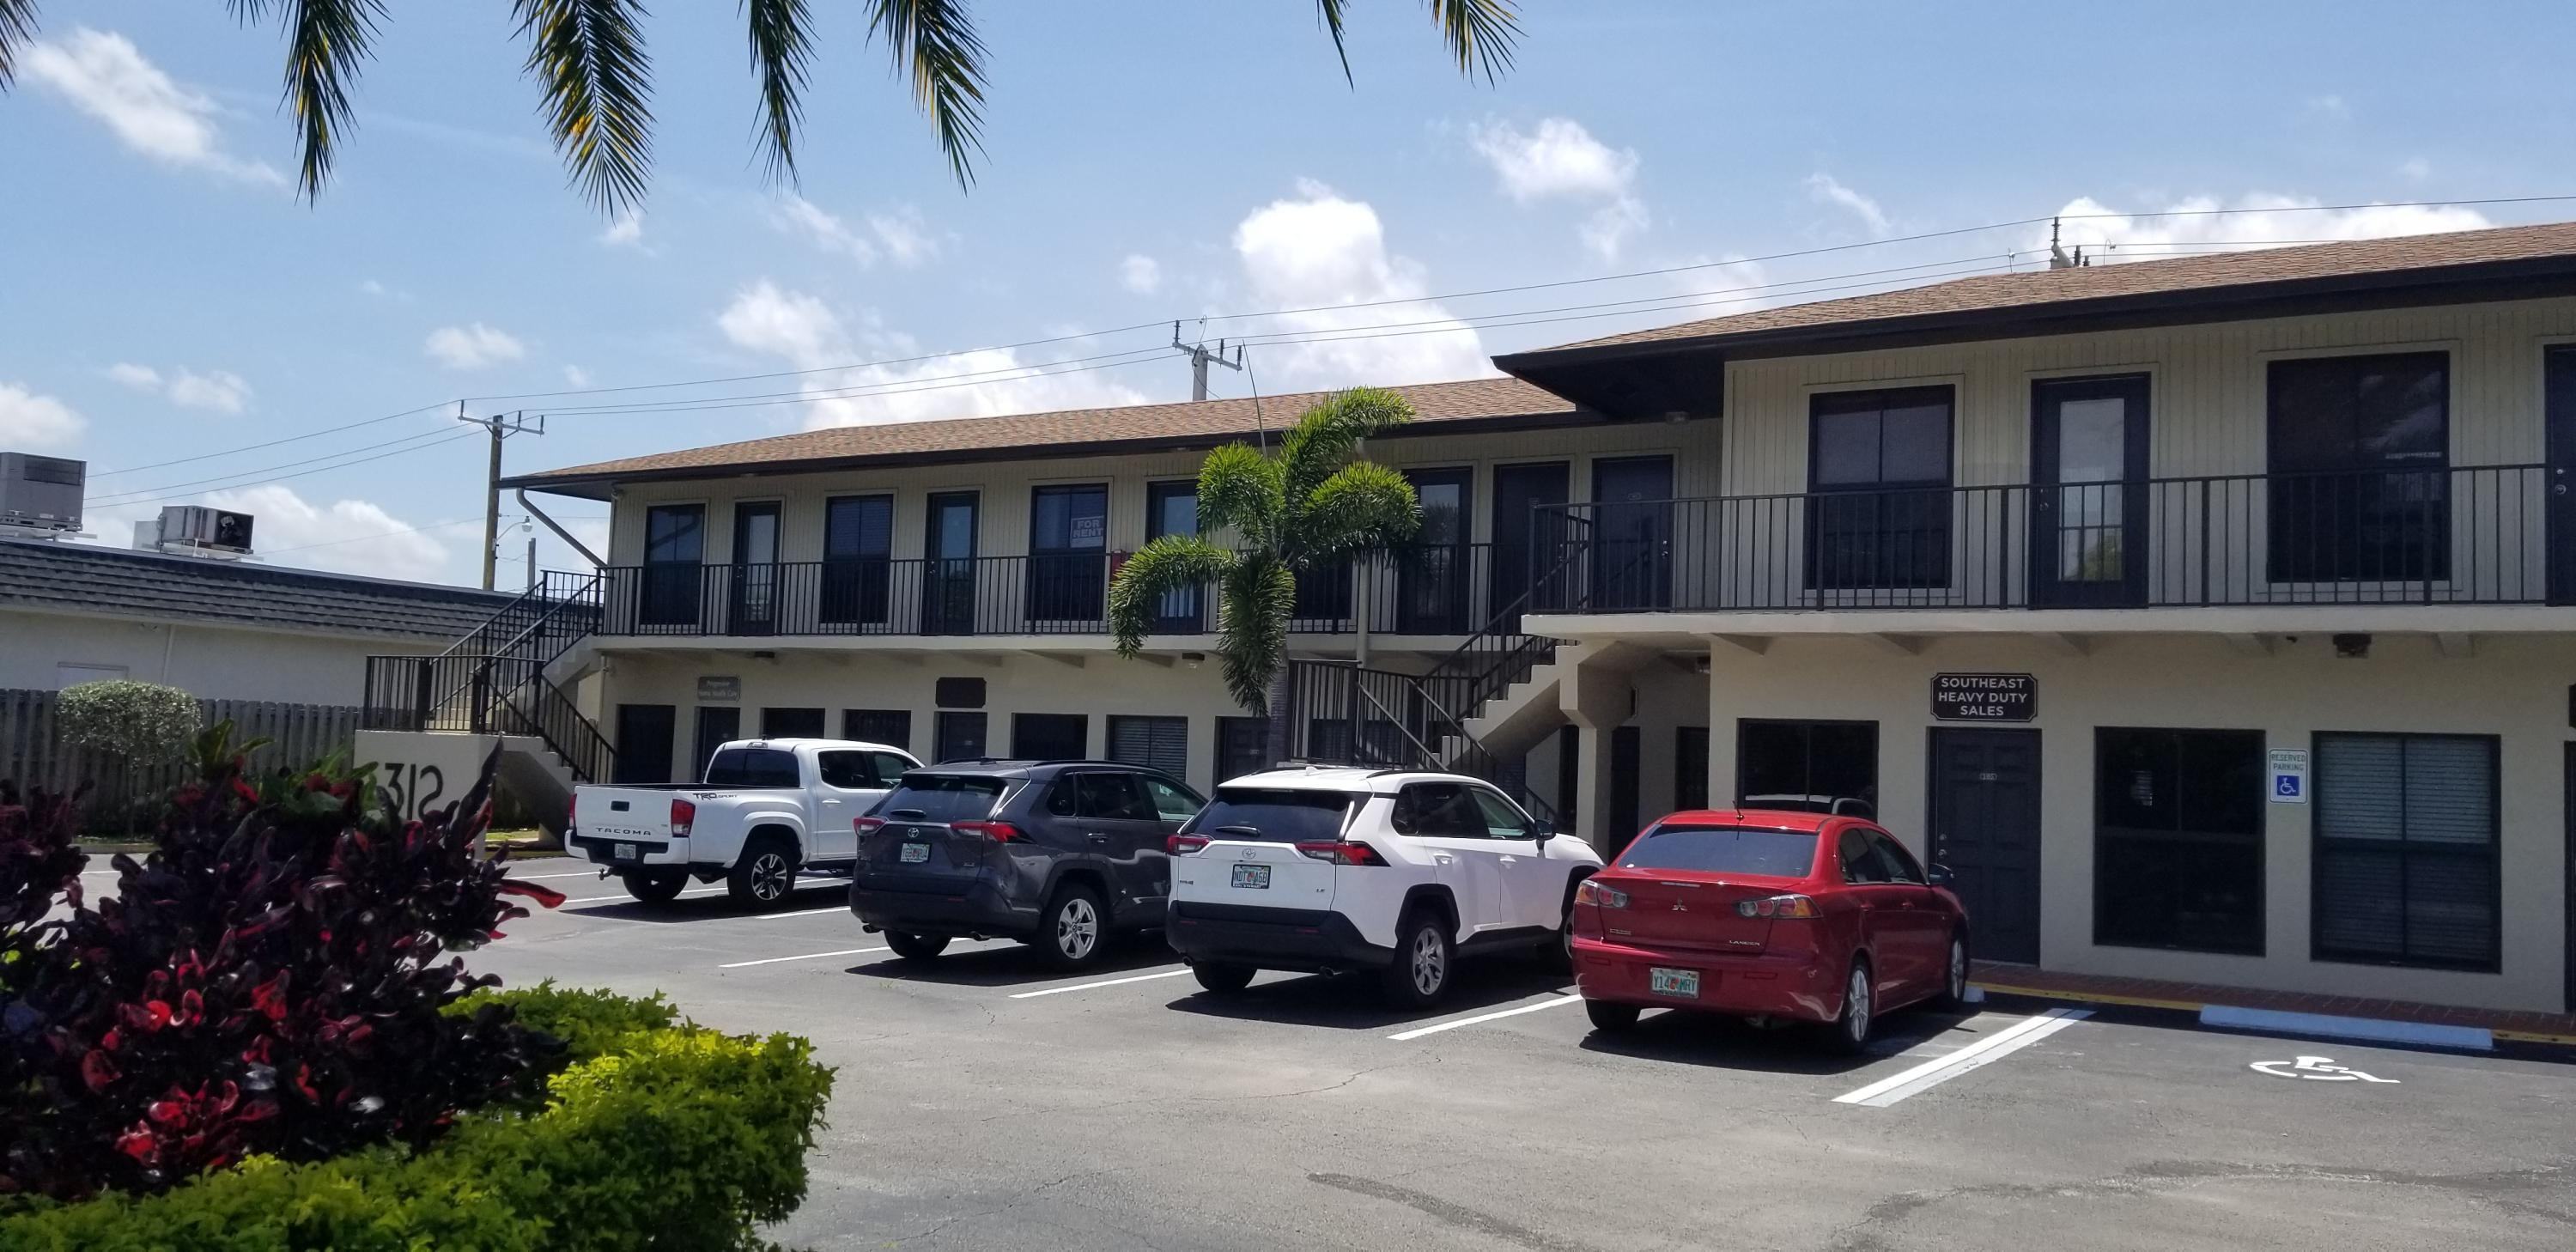 312 S Old Dixie Unit 208, Jupiter, Florida 33458